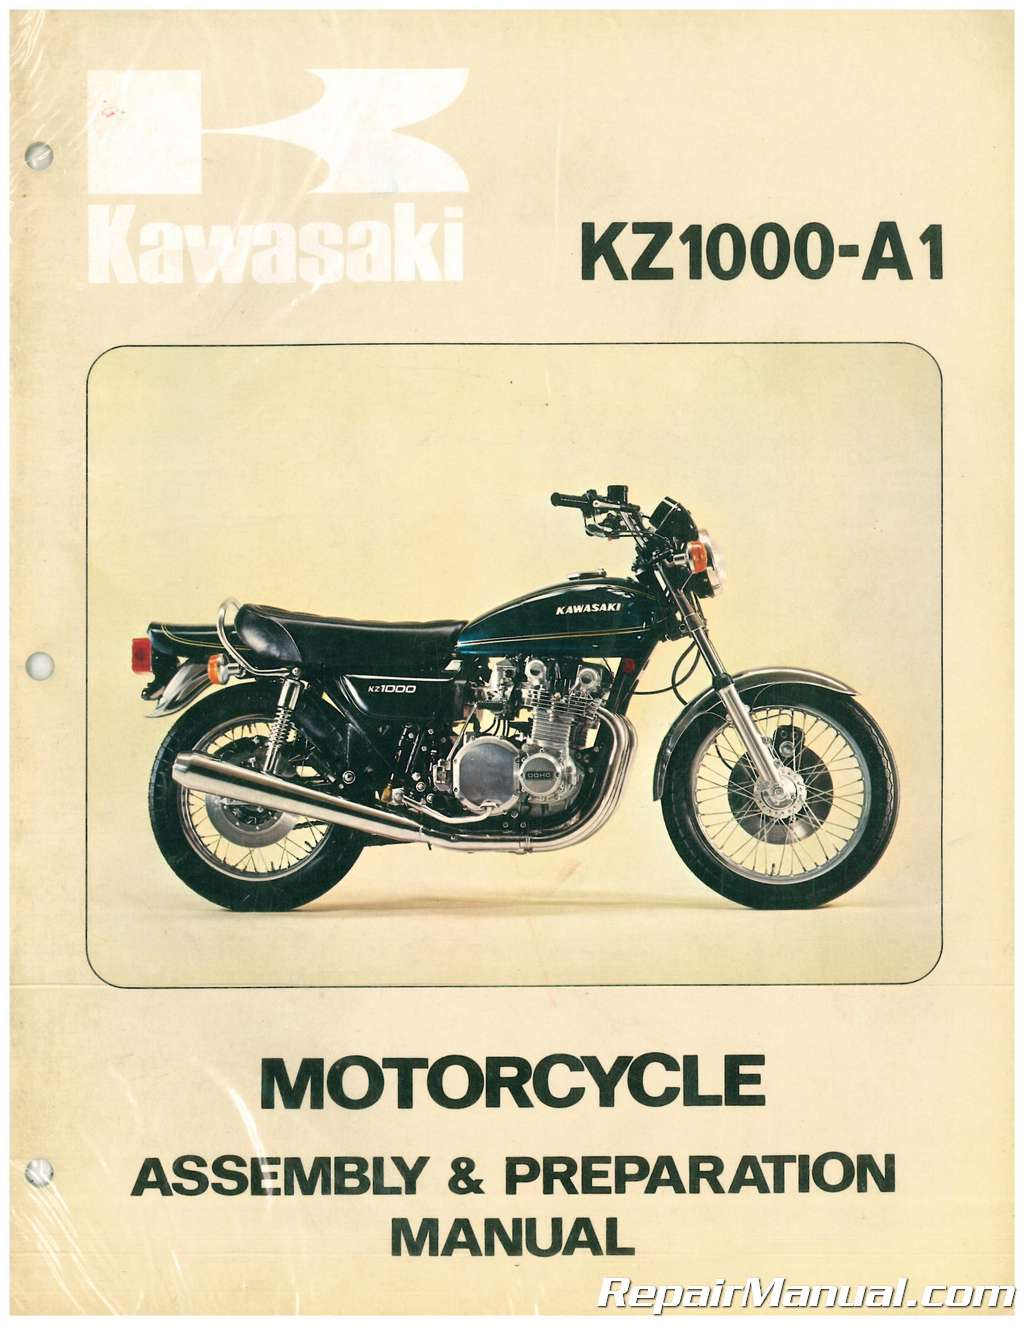 1977 Kawasaki KZ1000 A1 Motorcycle Assembly Preparation Manual